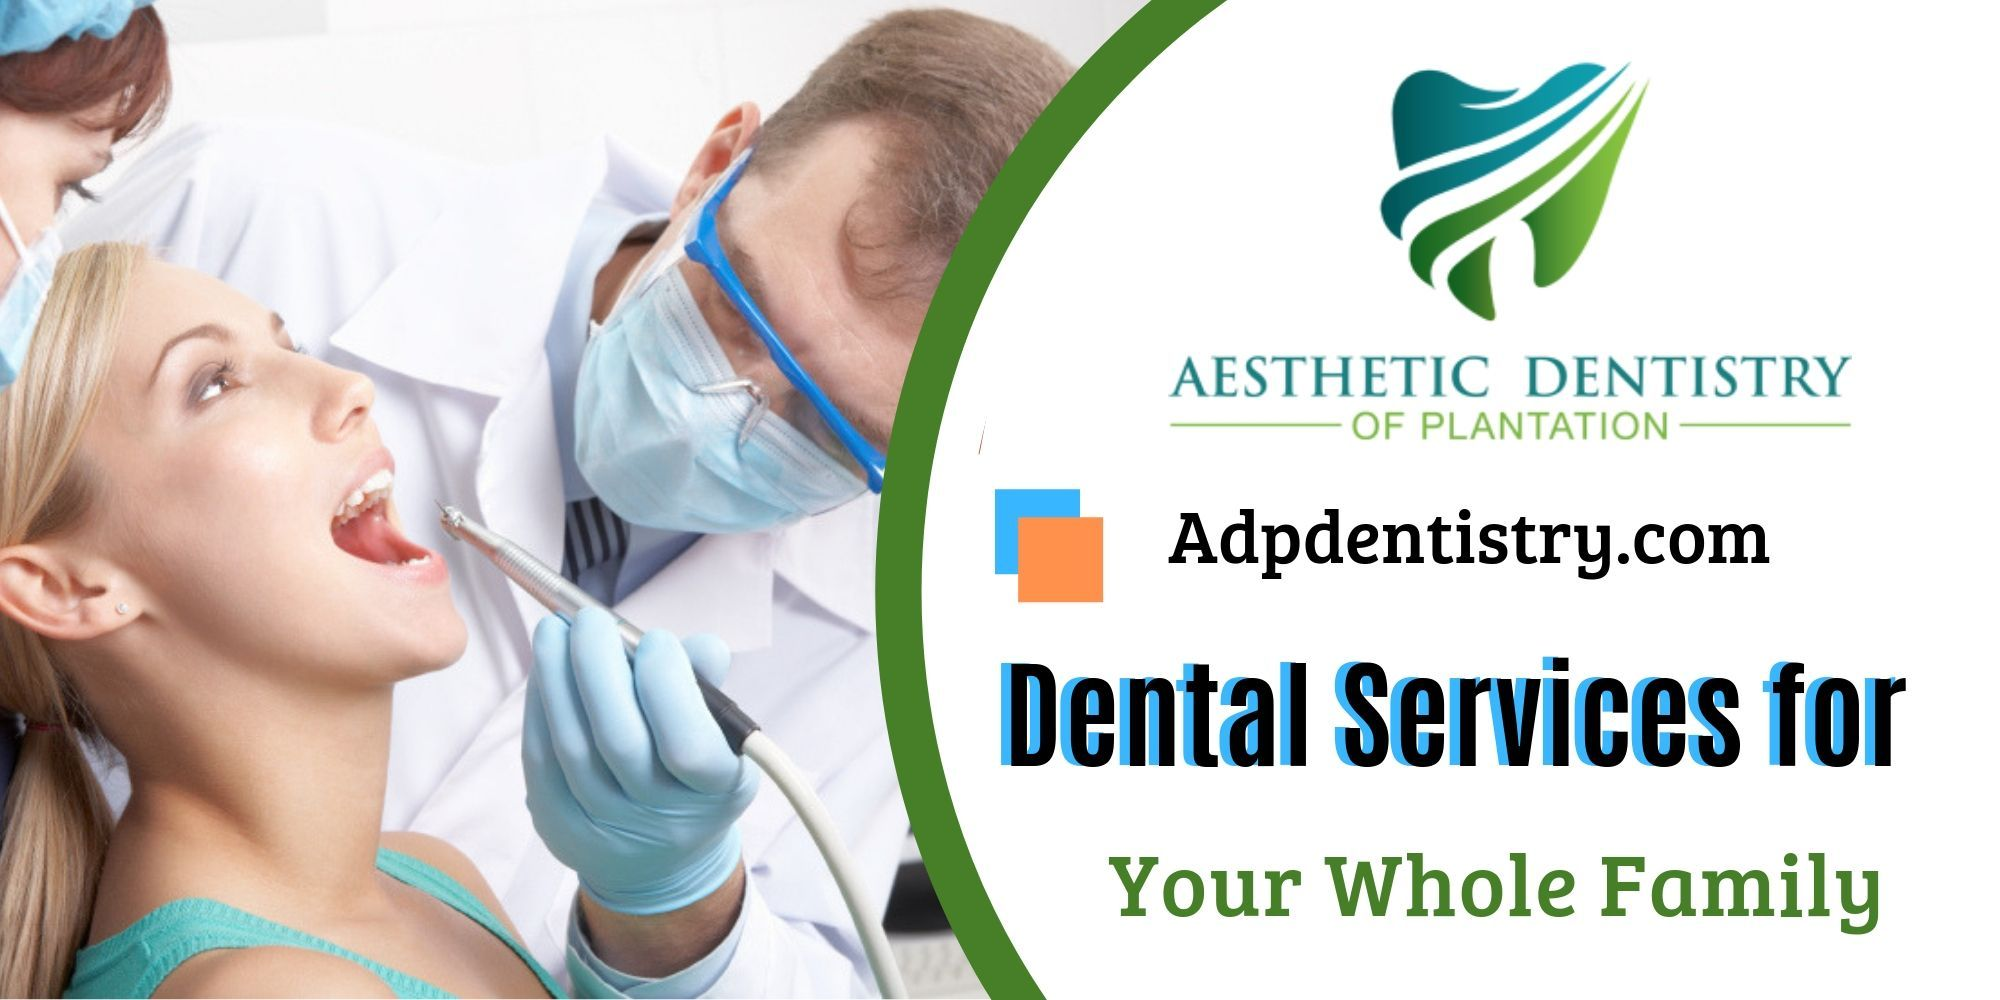 Pin by Aesthetic Dentistry on Dental Care Aesthetic